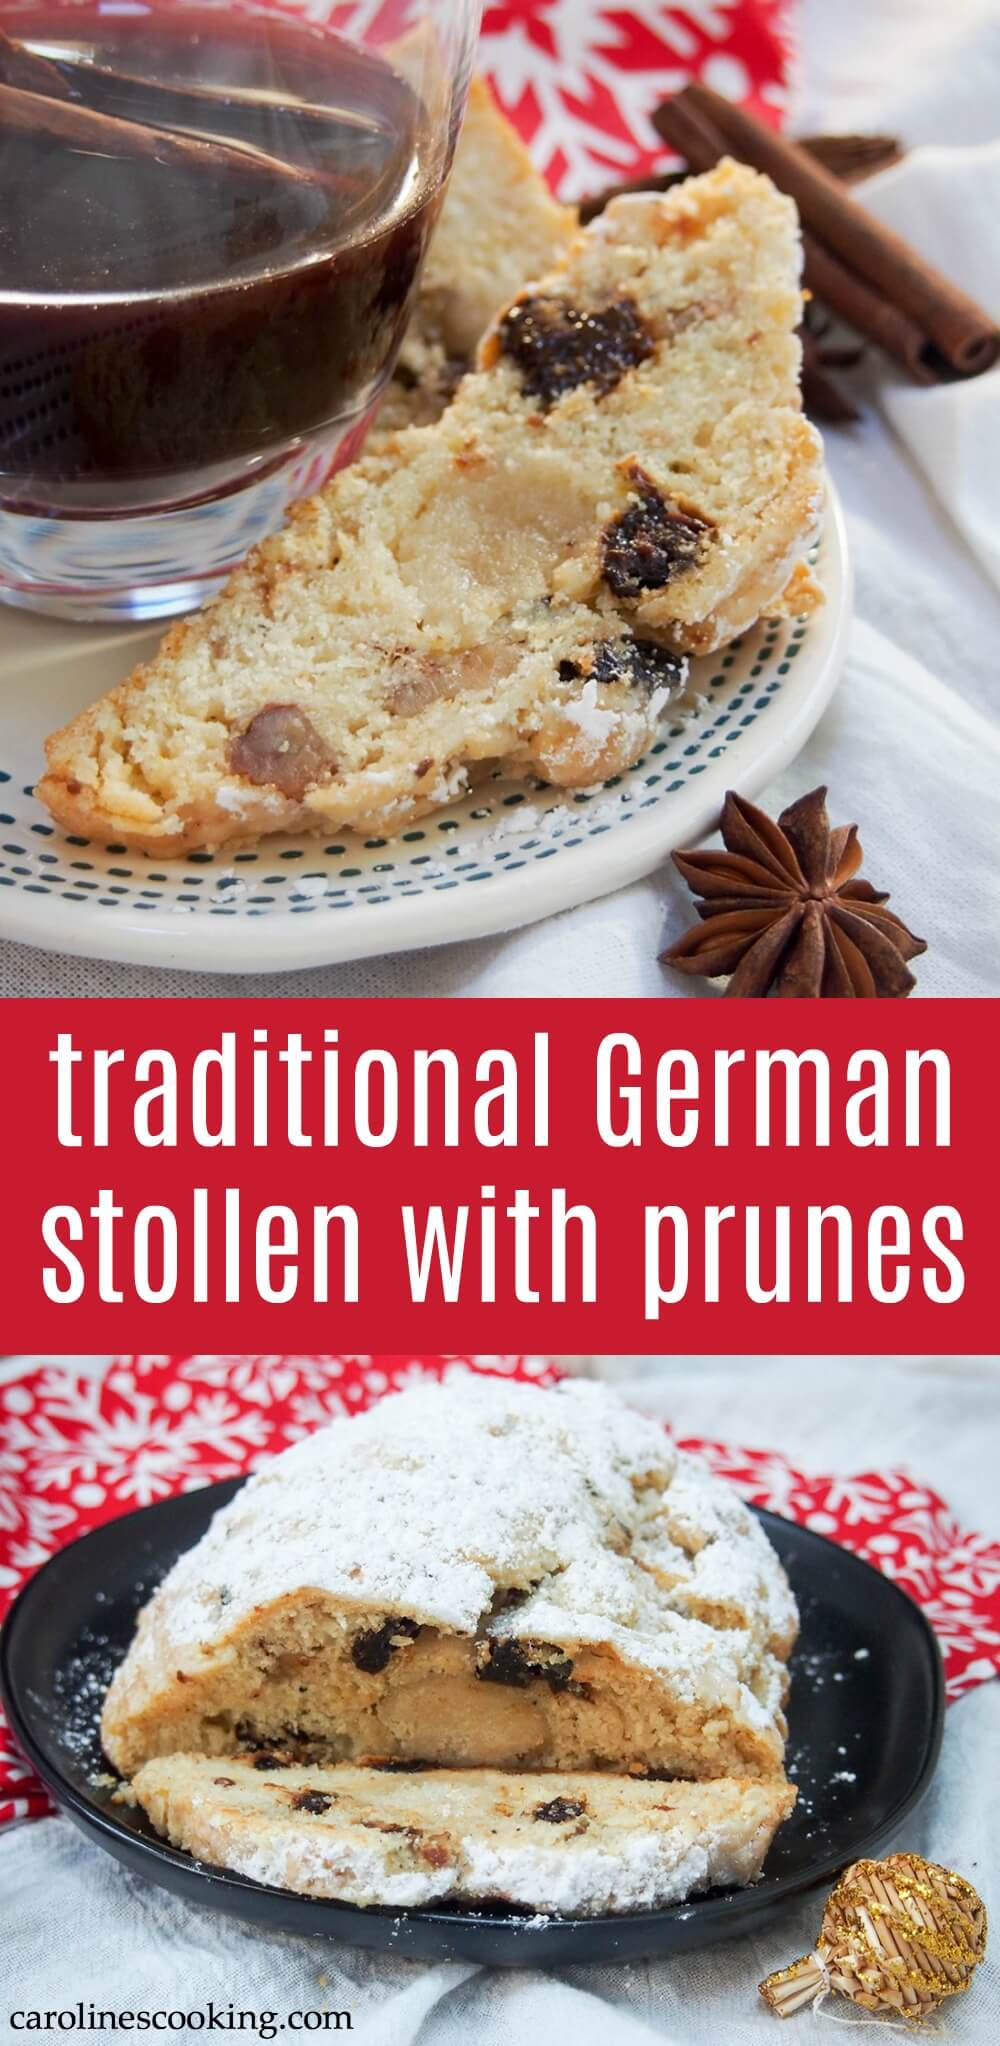 Stollen is Germany's Christmas cake and this version is made with prunes, lemon zest & cardamon. It's wonderfully aromatic, moist & delicious - the perfect seasonal treat. Bonus, it's easy to make. #stollen #german #christmas #baking